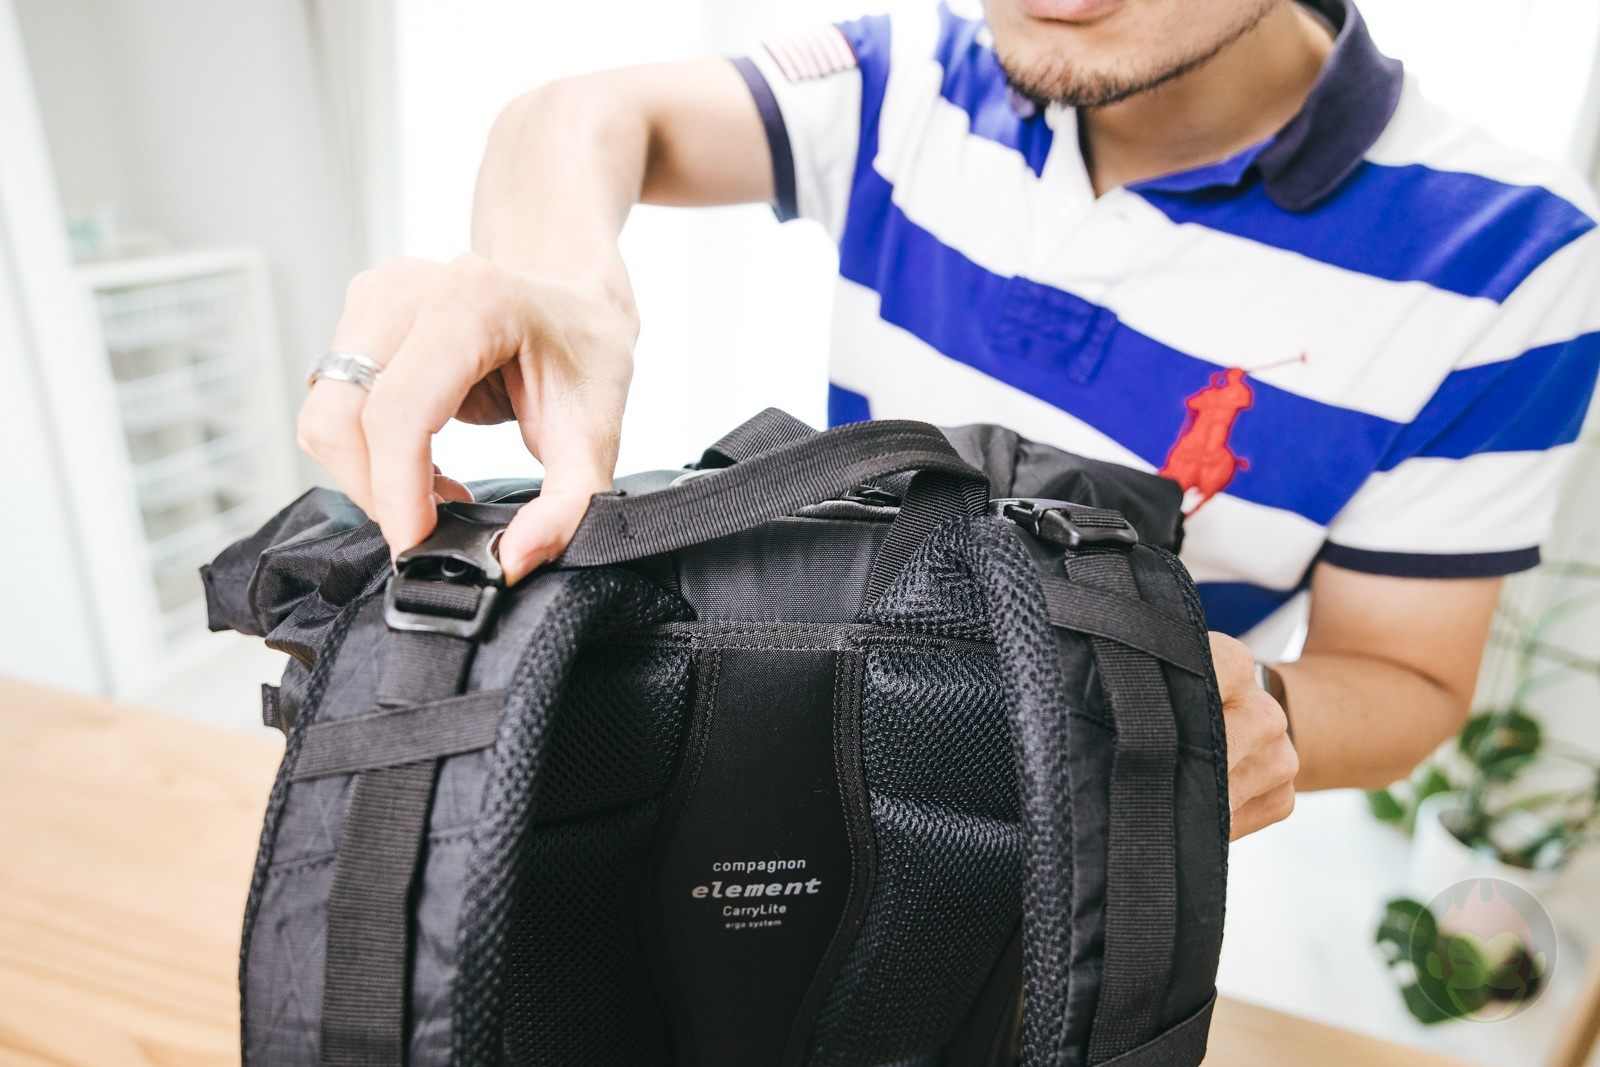 Compagnon element bacpack review 19